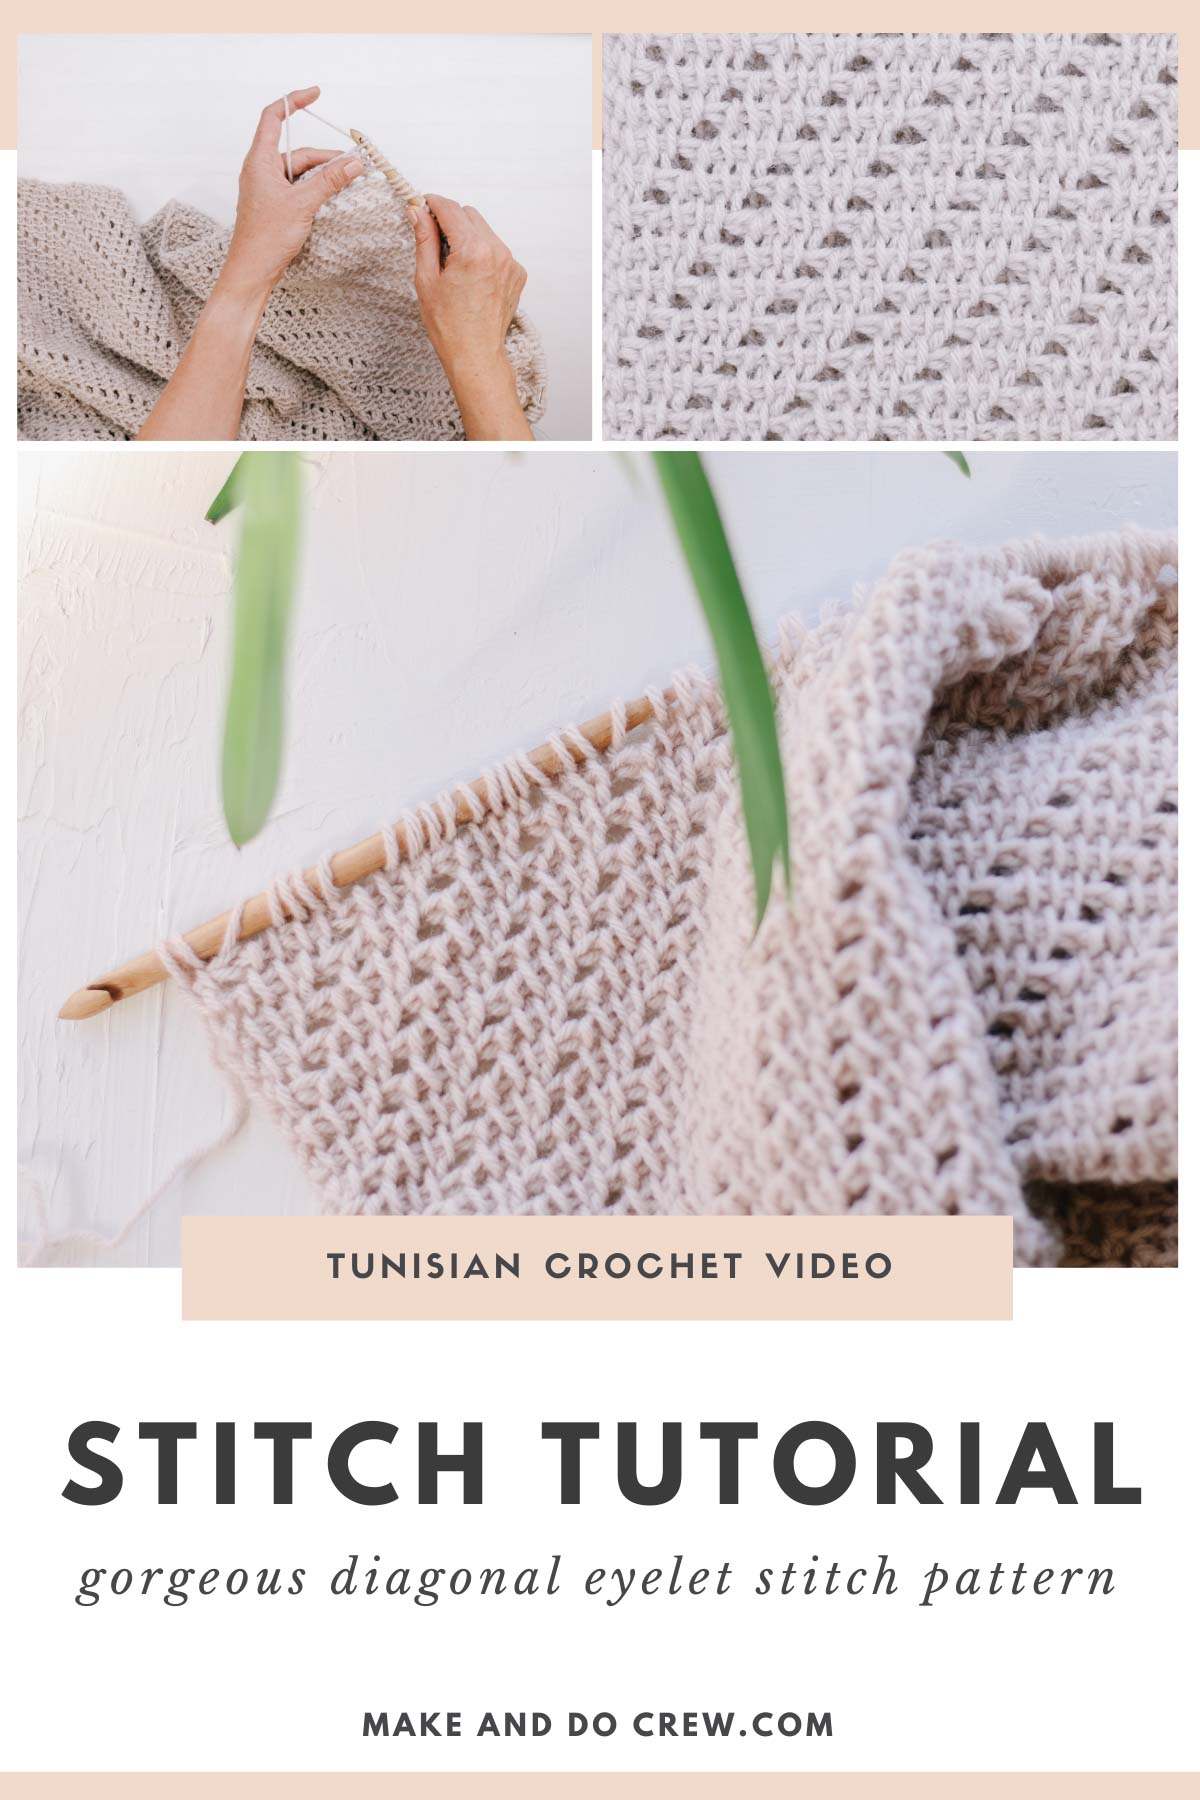 This beautiful Tunisian crochet stitch includes simple, modern eyelets that create a drapy and flowy fabric.